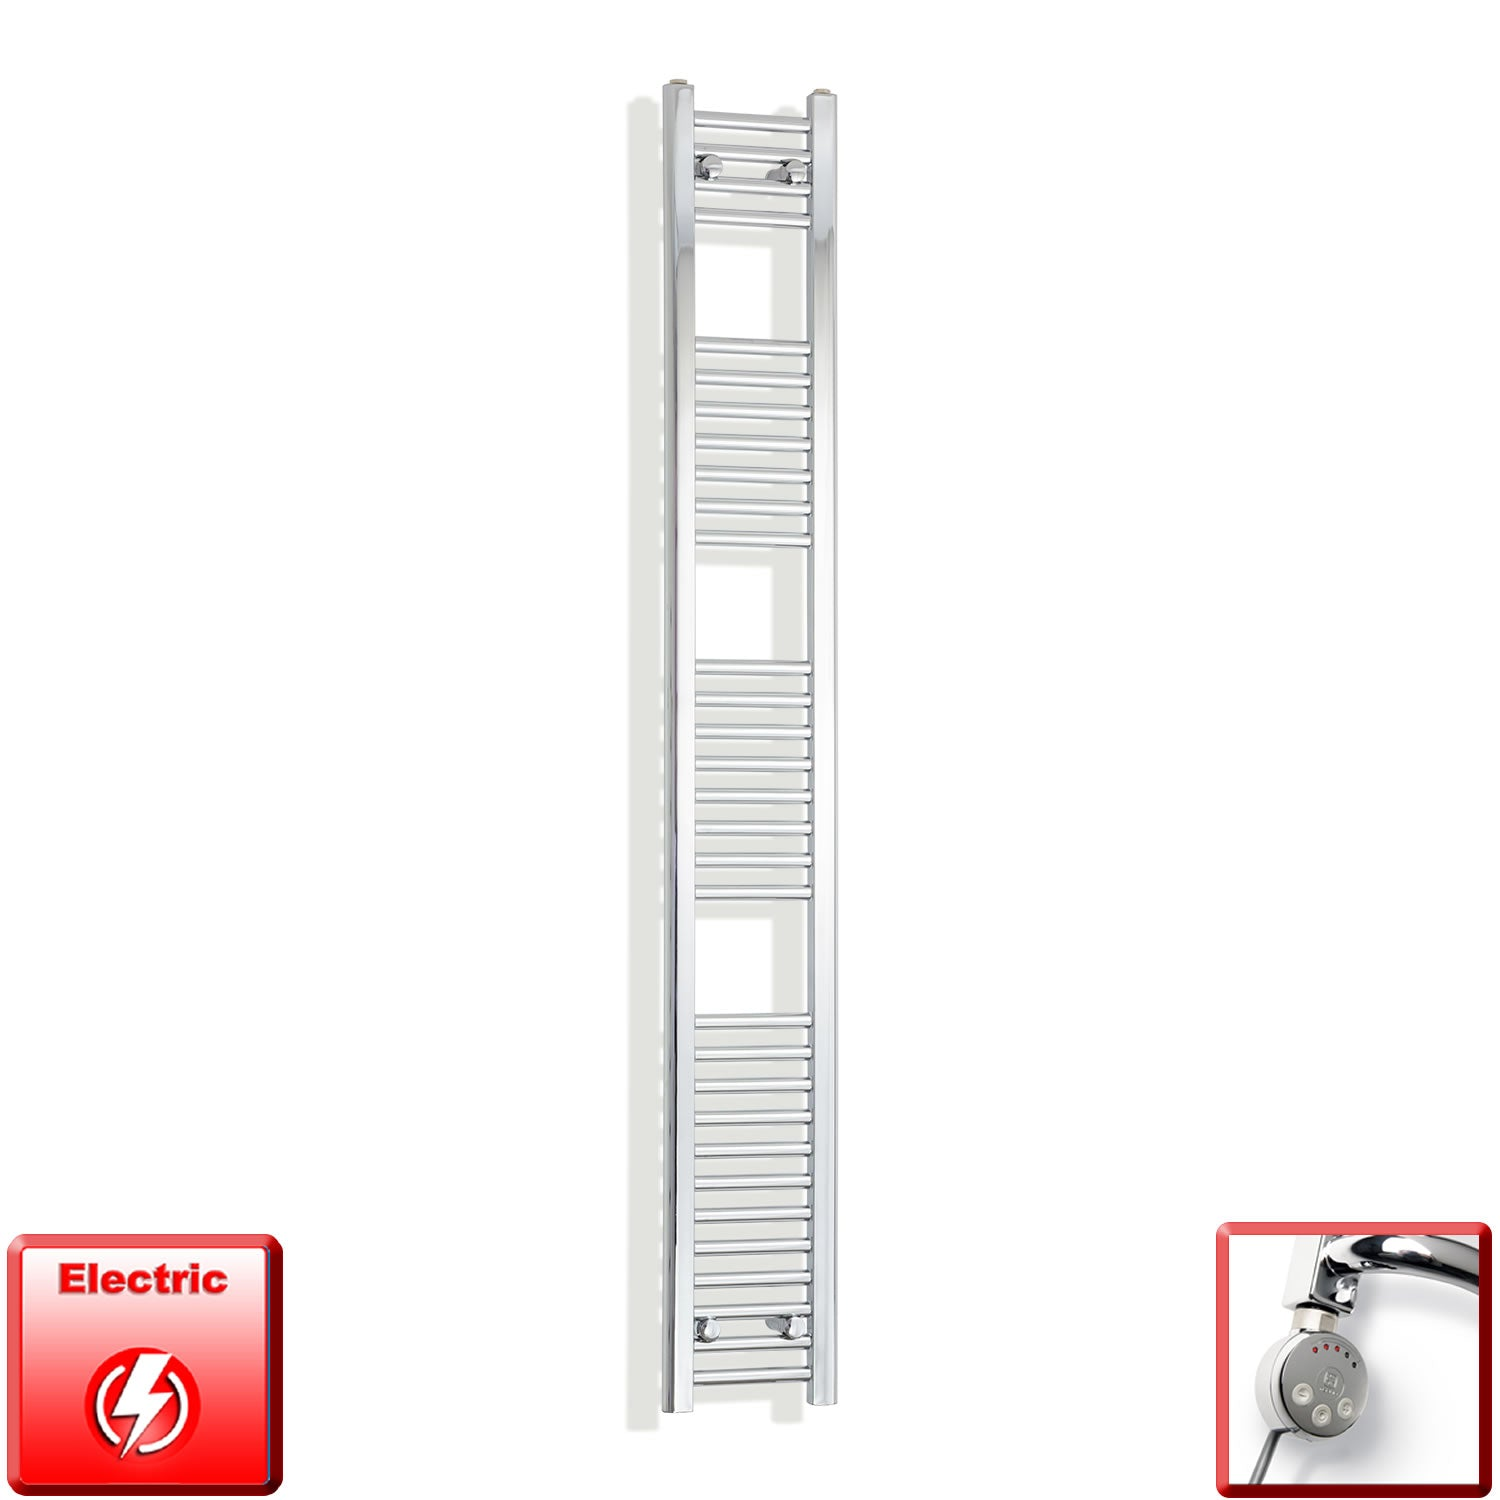 250mm Wide 1800mm High Pre-Filled Chrome Electric Towel Rail Radiator With Thermostatic MEG Element